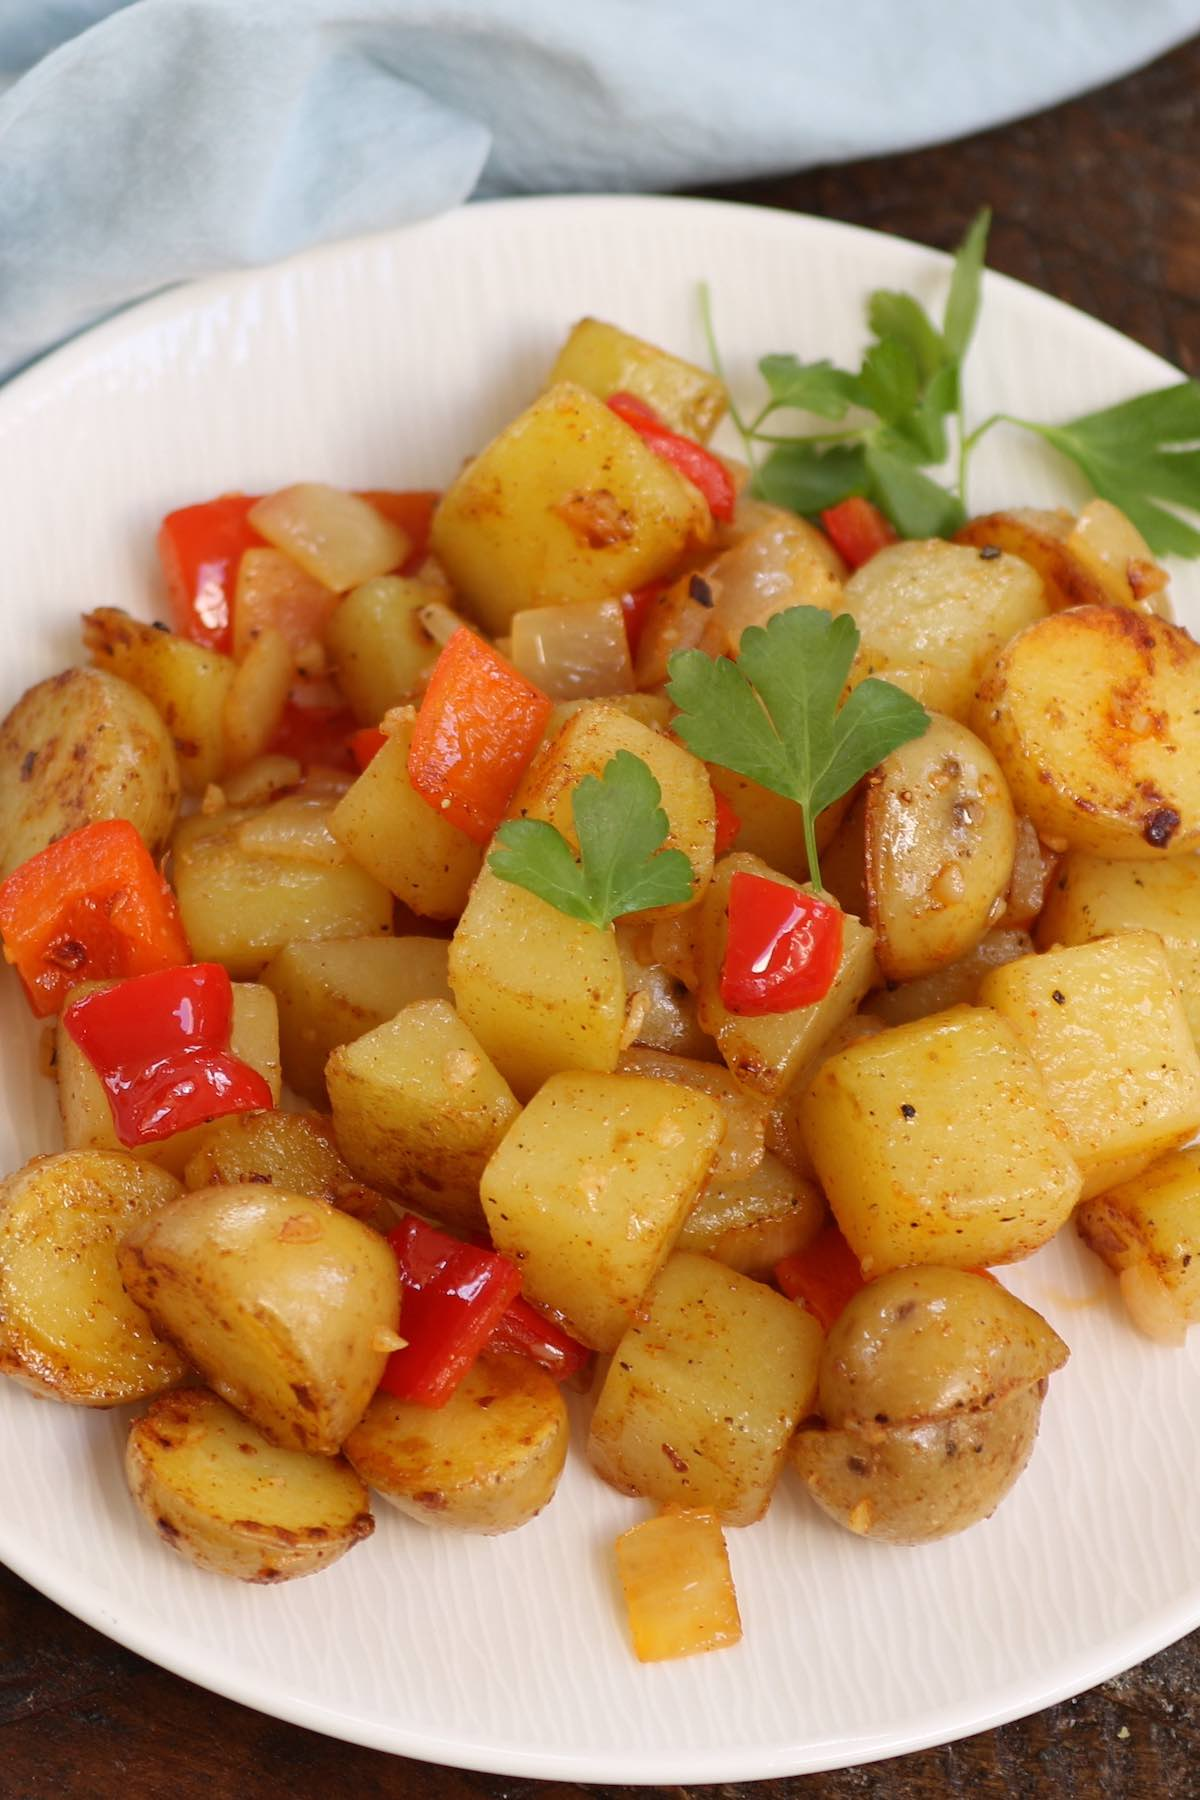 Southern smothered potatoes on a serving plate